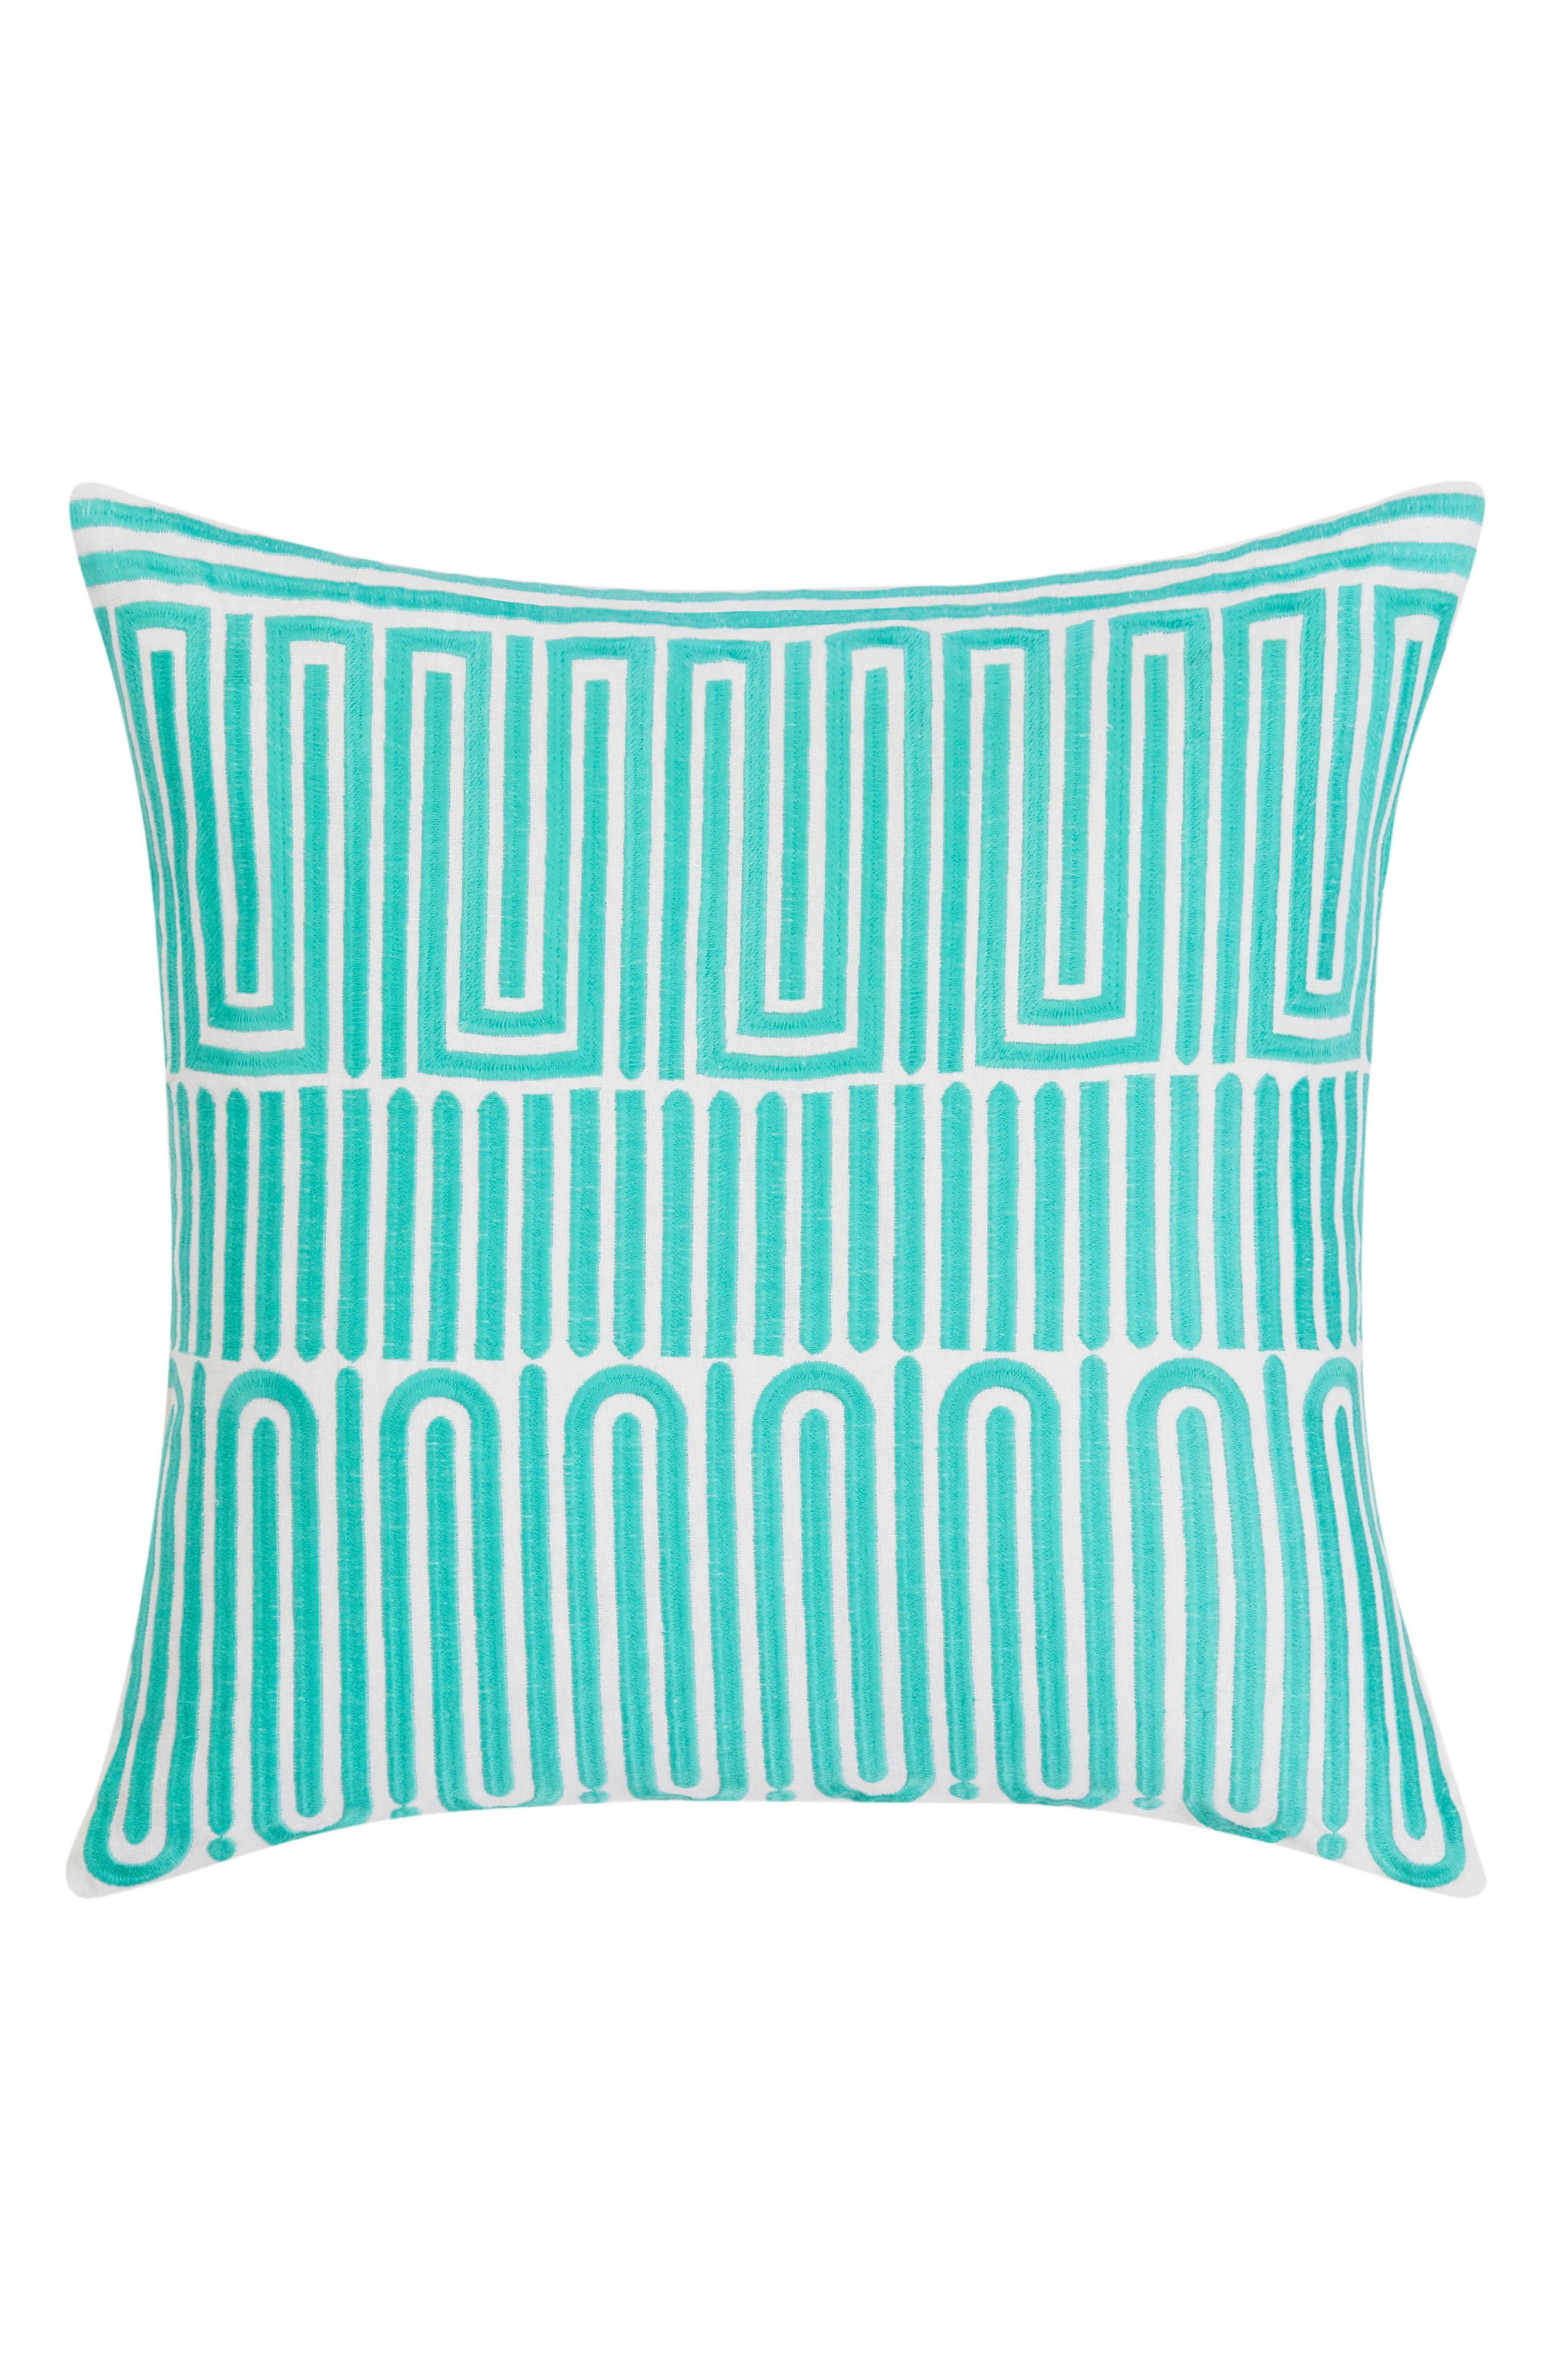 Racket Club Accent Pillow,                         Main,                         color, Turquoise